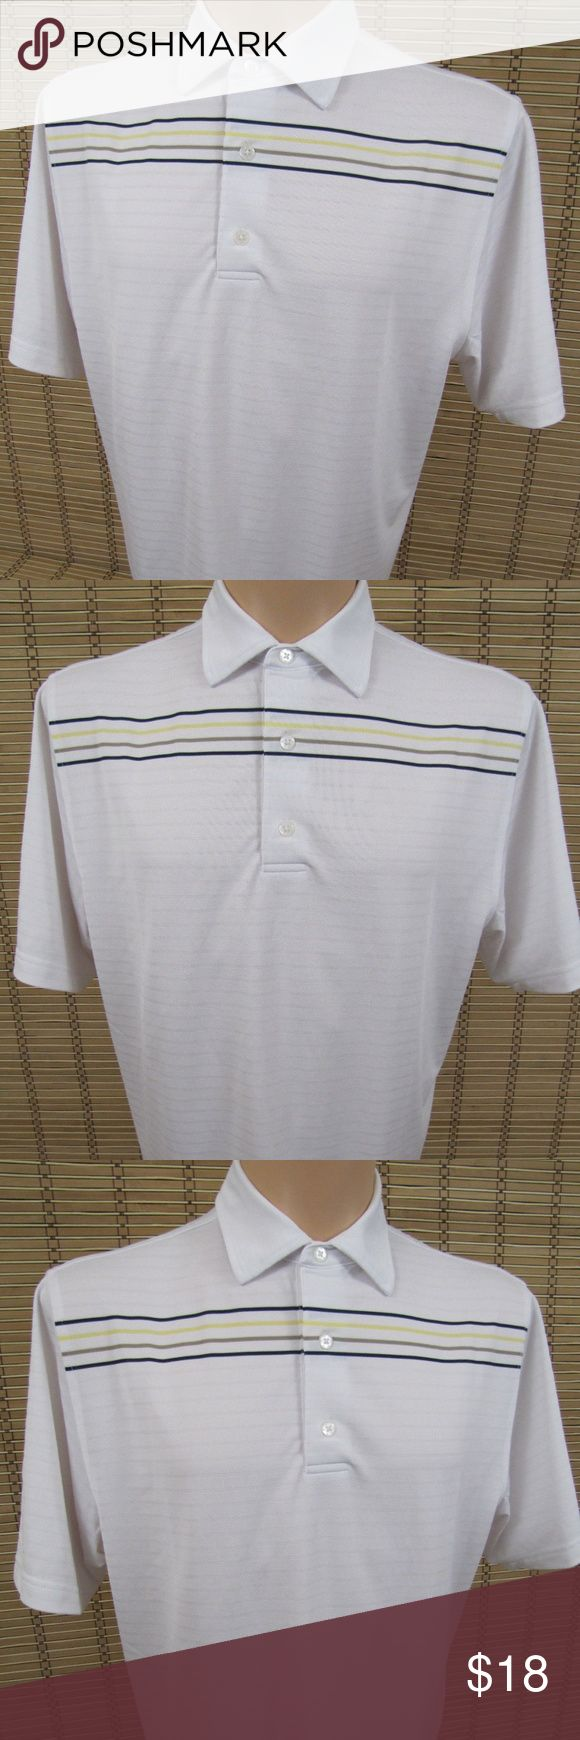 """FootJoy Mens White Striped Embroidered Polo Shirt Inventory # B182  Brand: FOOTJOY  Condition: This item is in Very Nice Condition!  Item Specifics: Embroidered """"R"""" On Sleeve (see pic), Short Sleeve, Striped Polo  Material: 96% Polyester, 4% Spandex  Color: White  Size: Mens M  Pit to Pit (Across Chest):   22""""  Length (Top of Collar to Hem):   32"""" FootJoy Shirts Polos"""